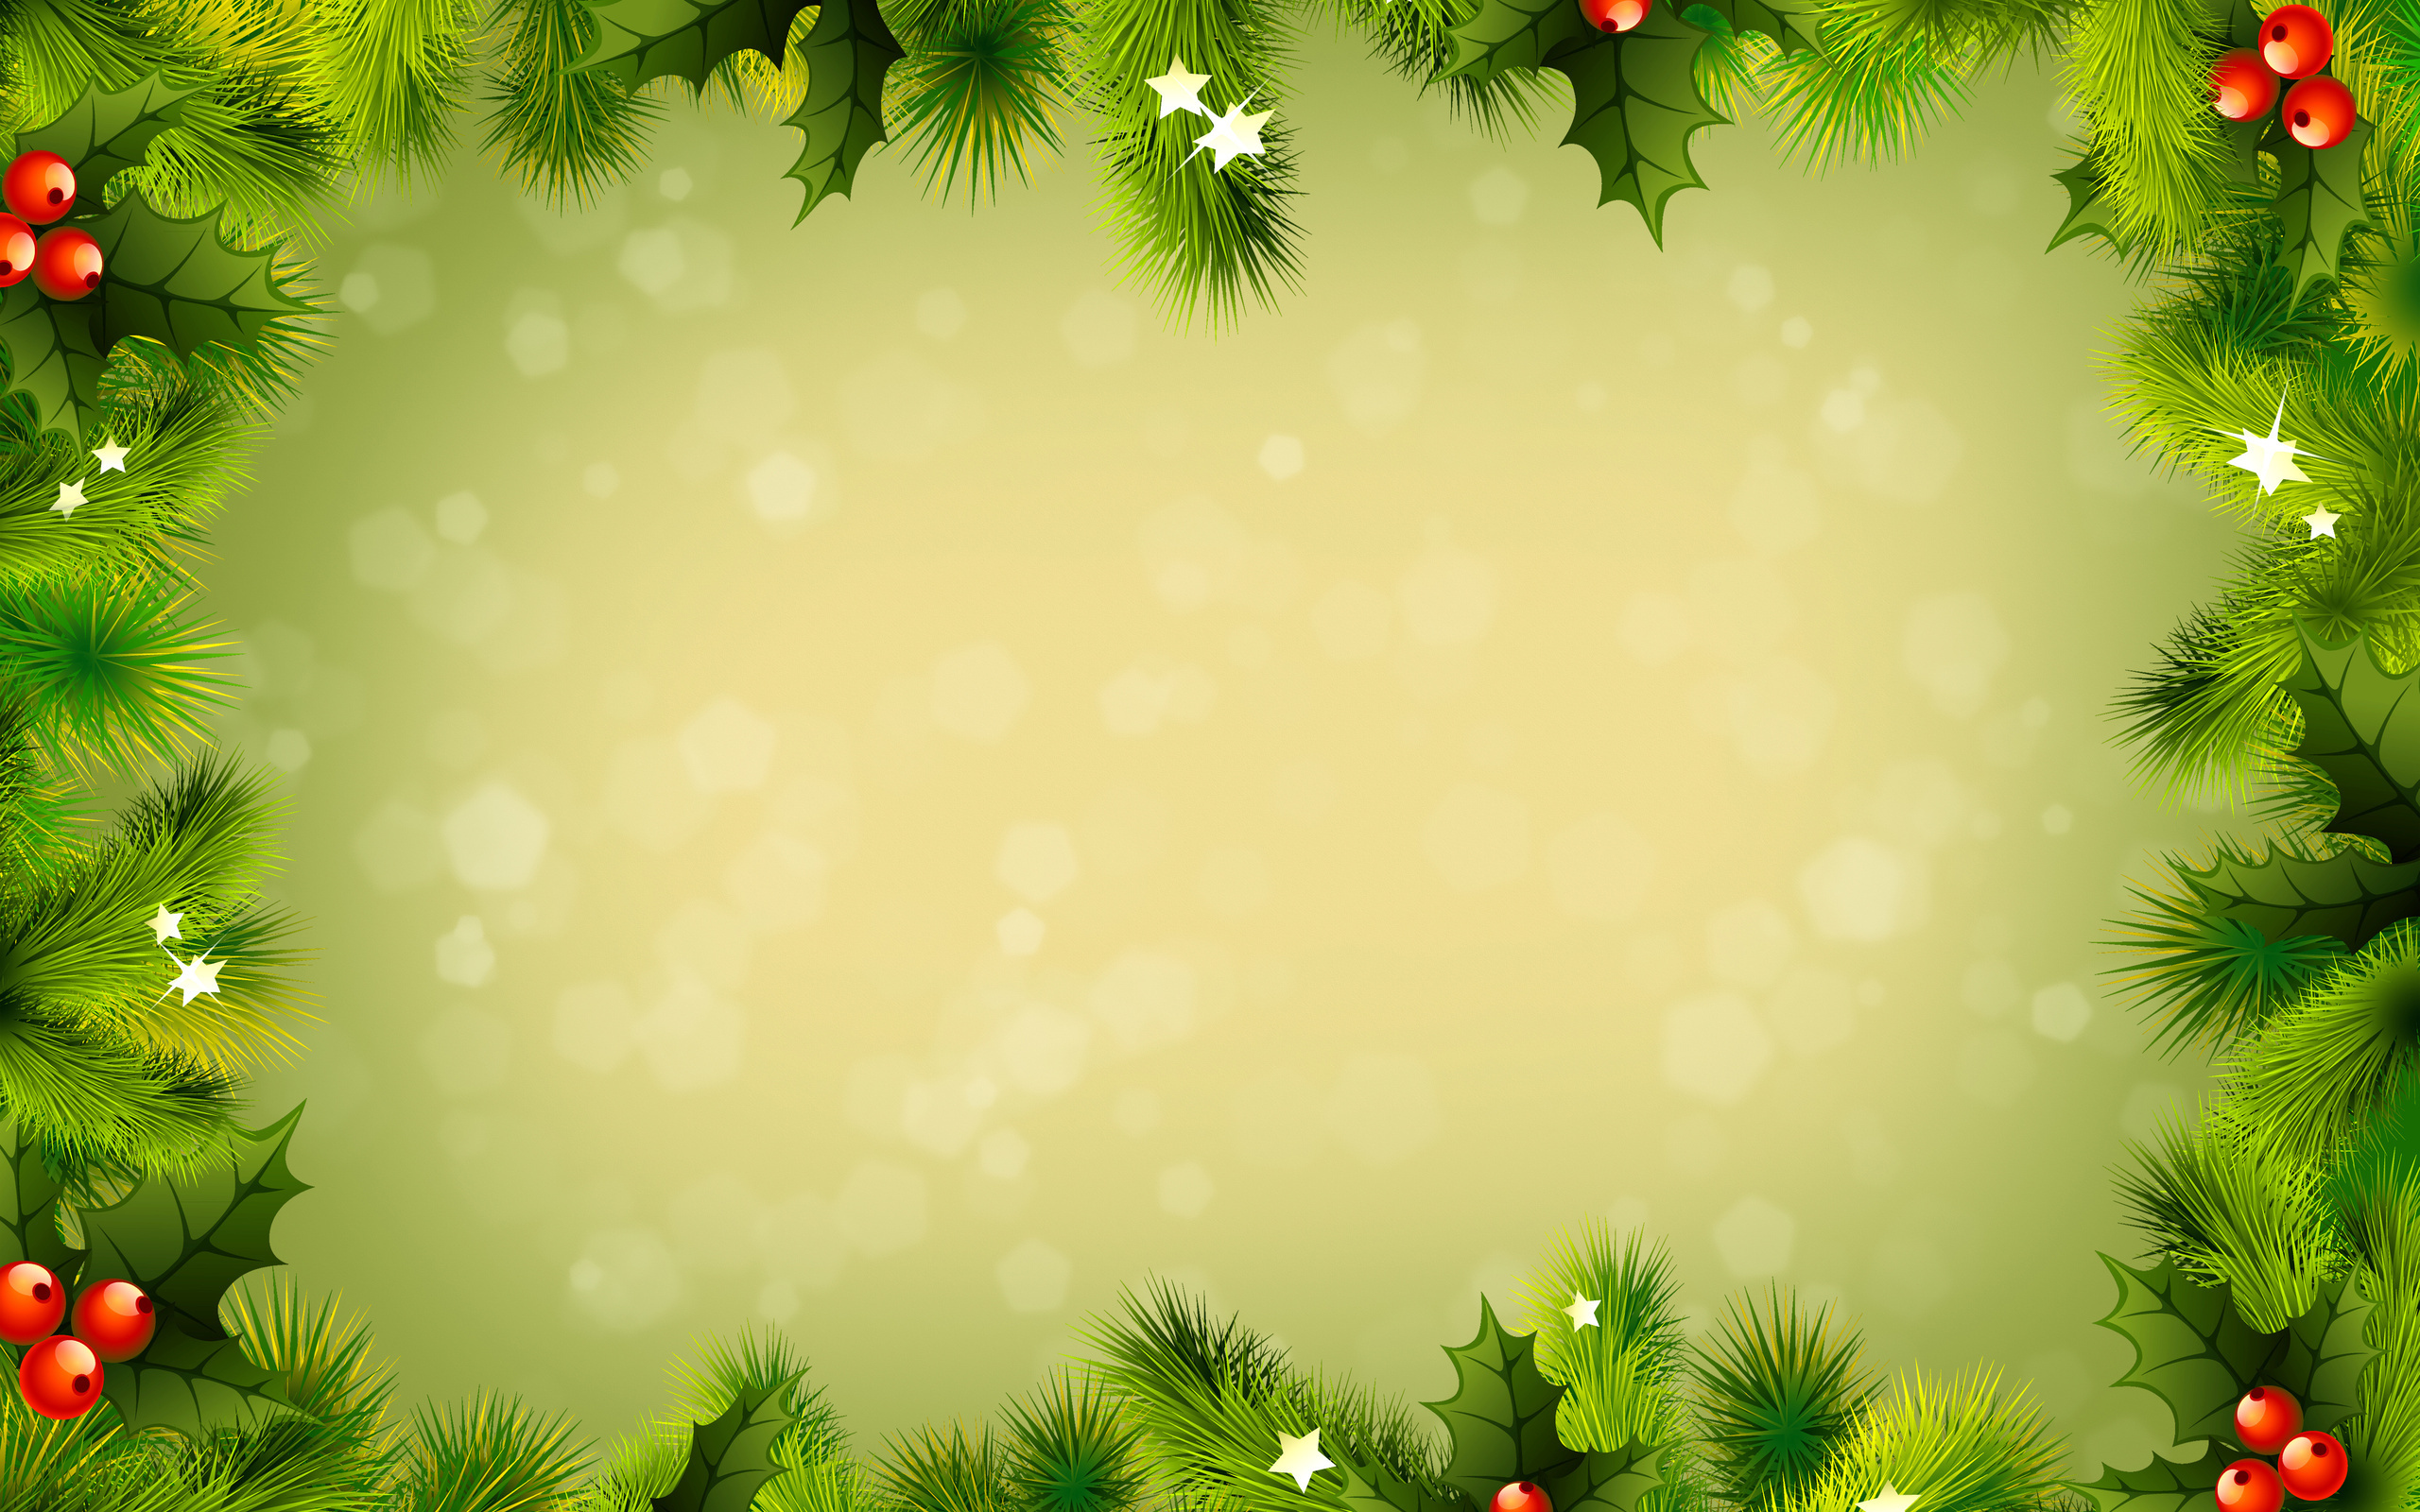 Christmas frame wallpaper 46999 2560x1600px christmas frame wallpaper 46999 voltagebd Image collections